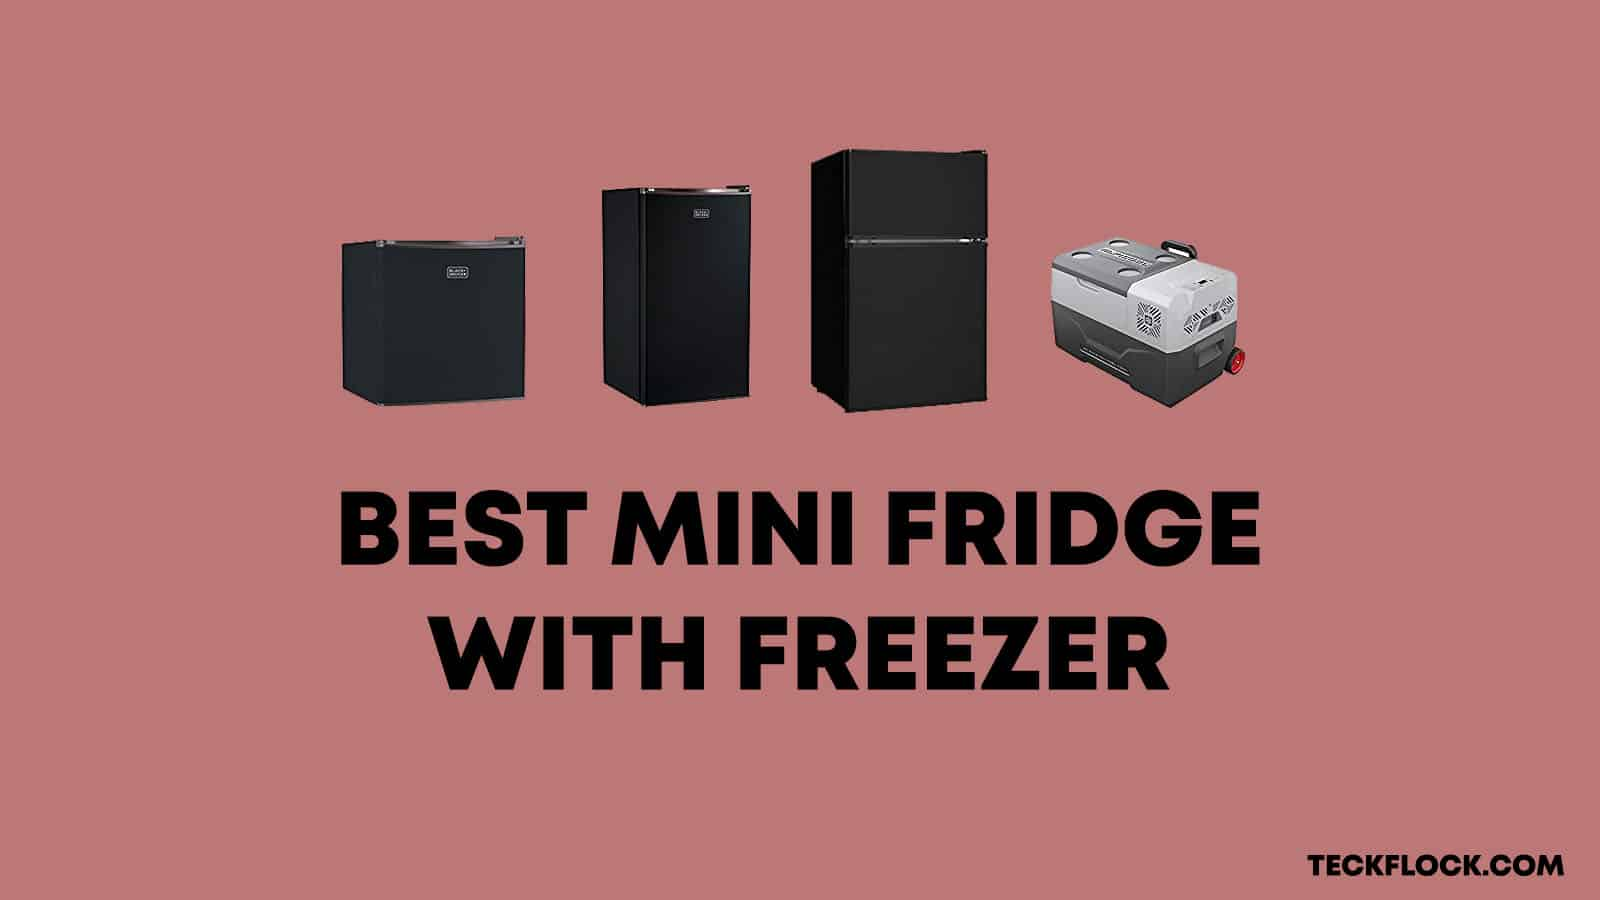 Best Mini Fridge with Freezer